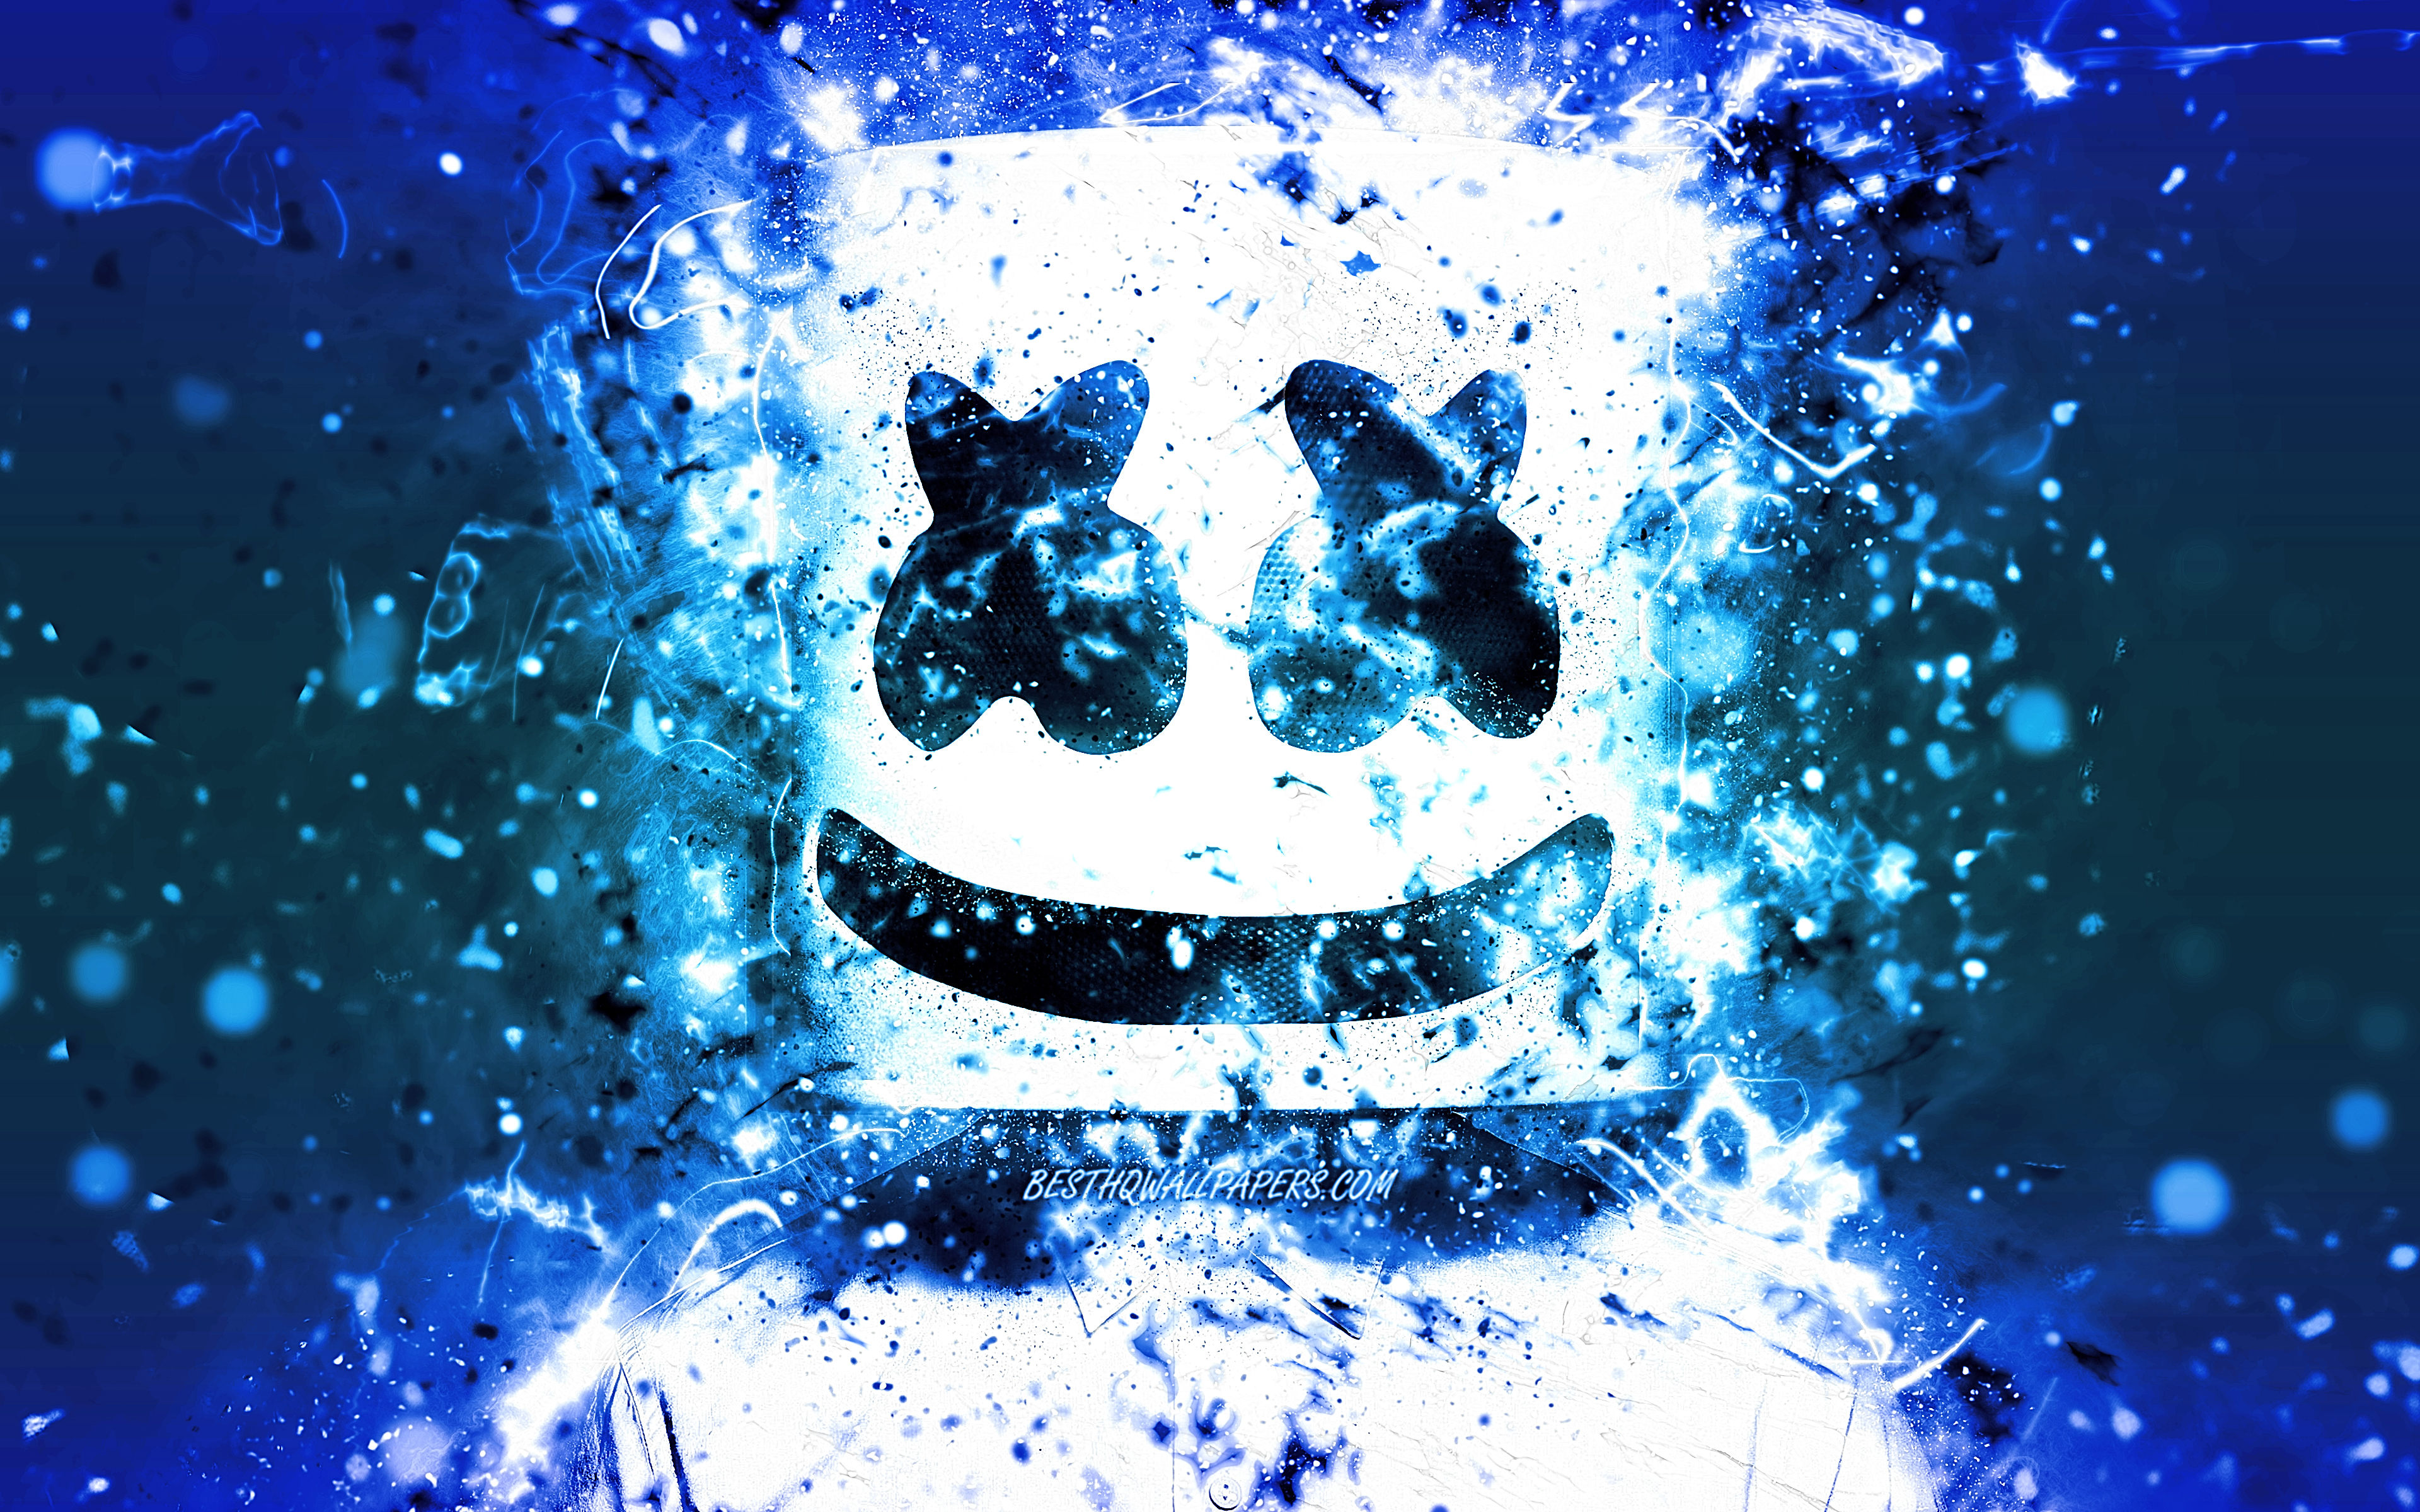 Marshmello, 4k, néon bleu, american DJ, fan art, Christopher Comstock, Marshmello 4K, des illustrations, des superstars, créatif, DJ Marshmello, DJs